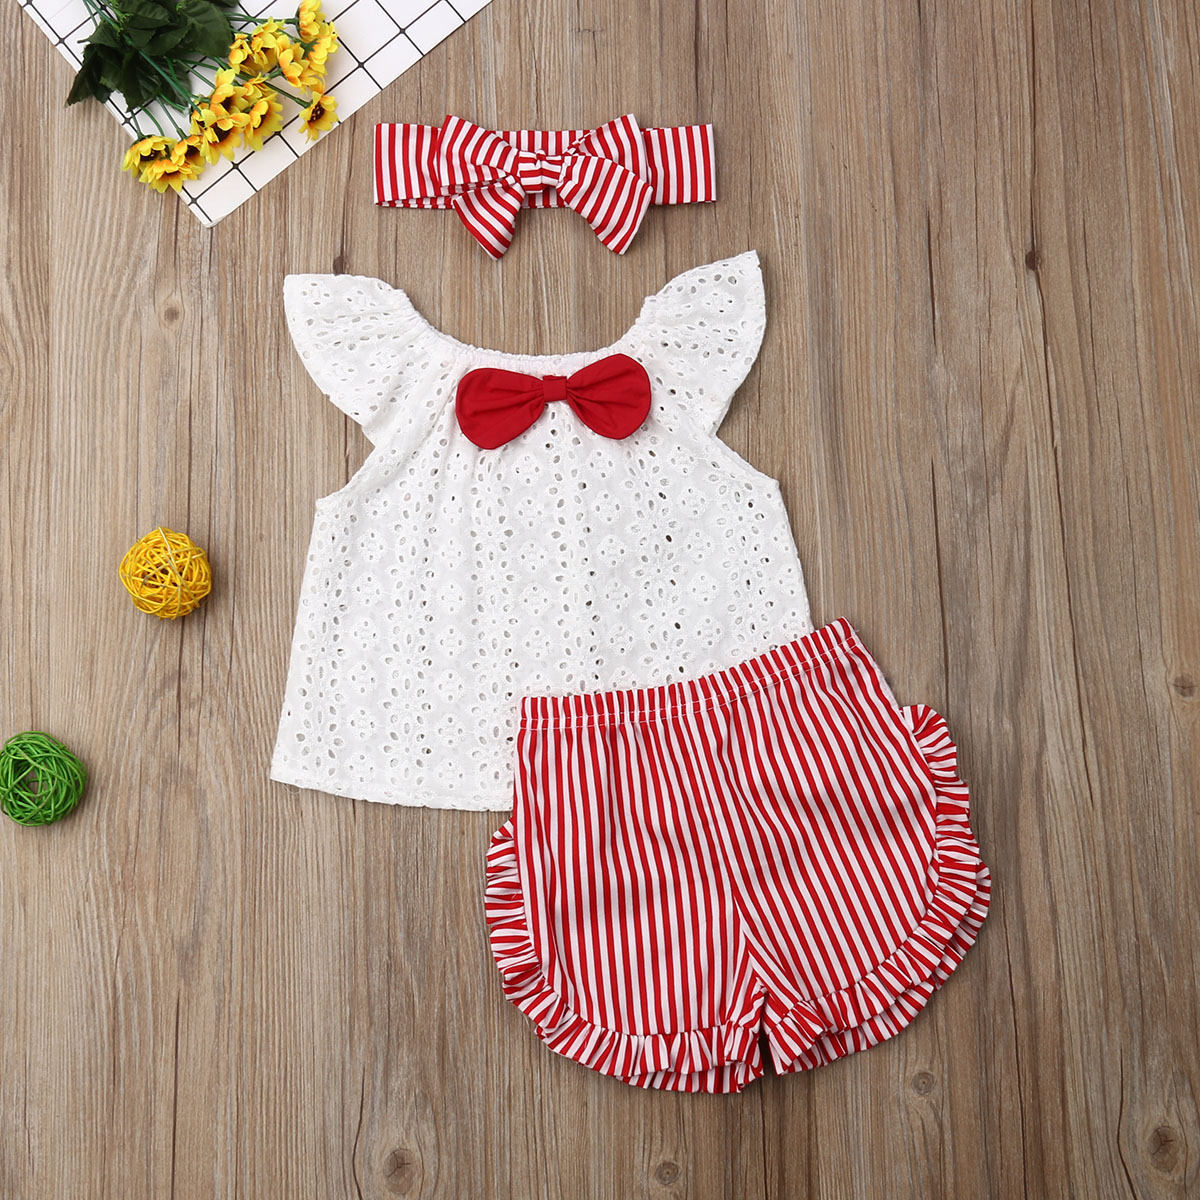 Pudcoco Newborn Baby Girl Clothes Fly Sleeve Tops Striped Short Pants Bowknot Headband 3Pcs Outfits Clothes Summer